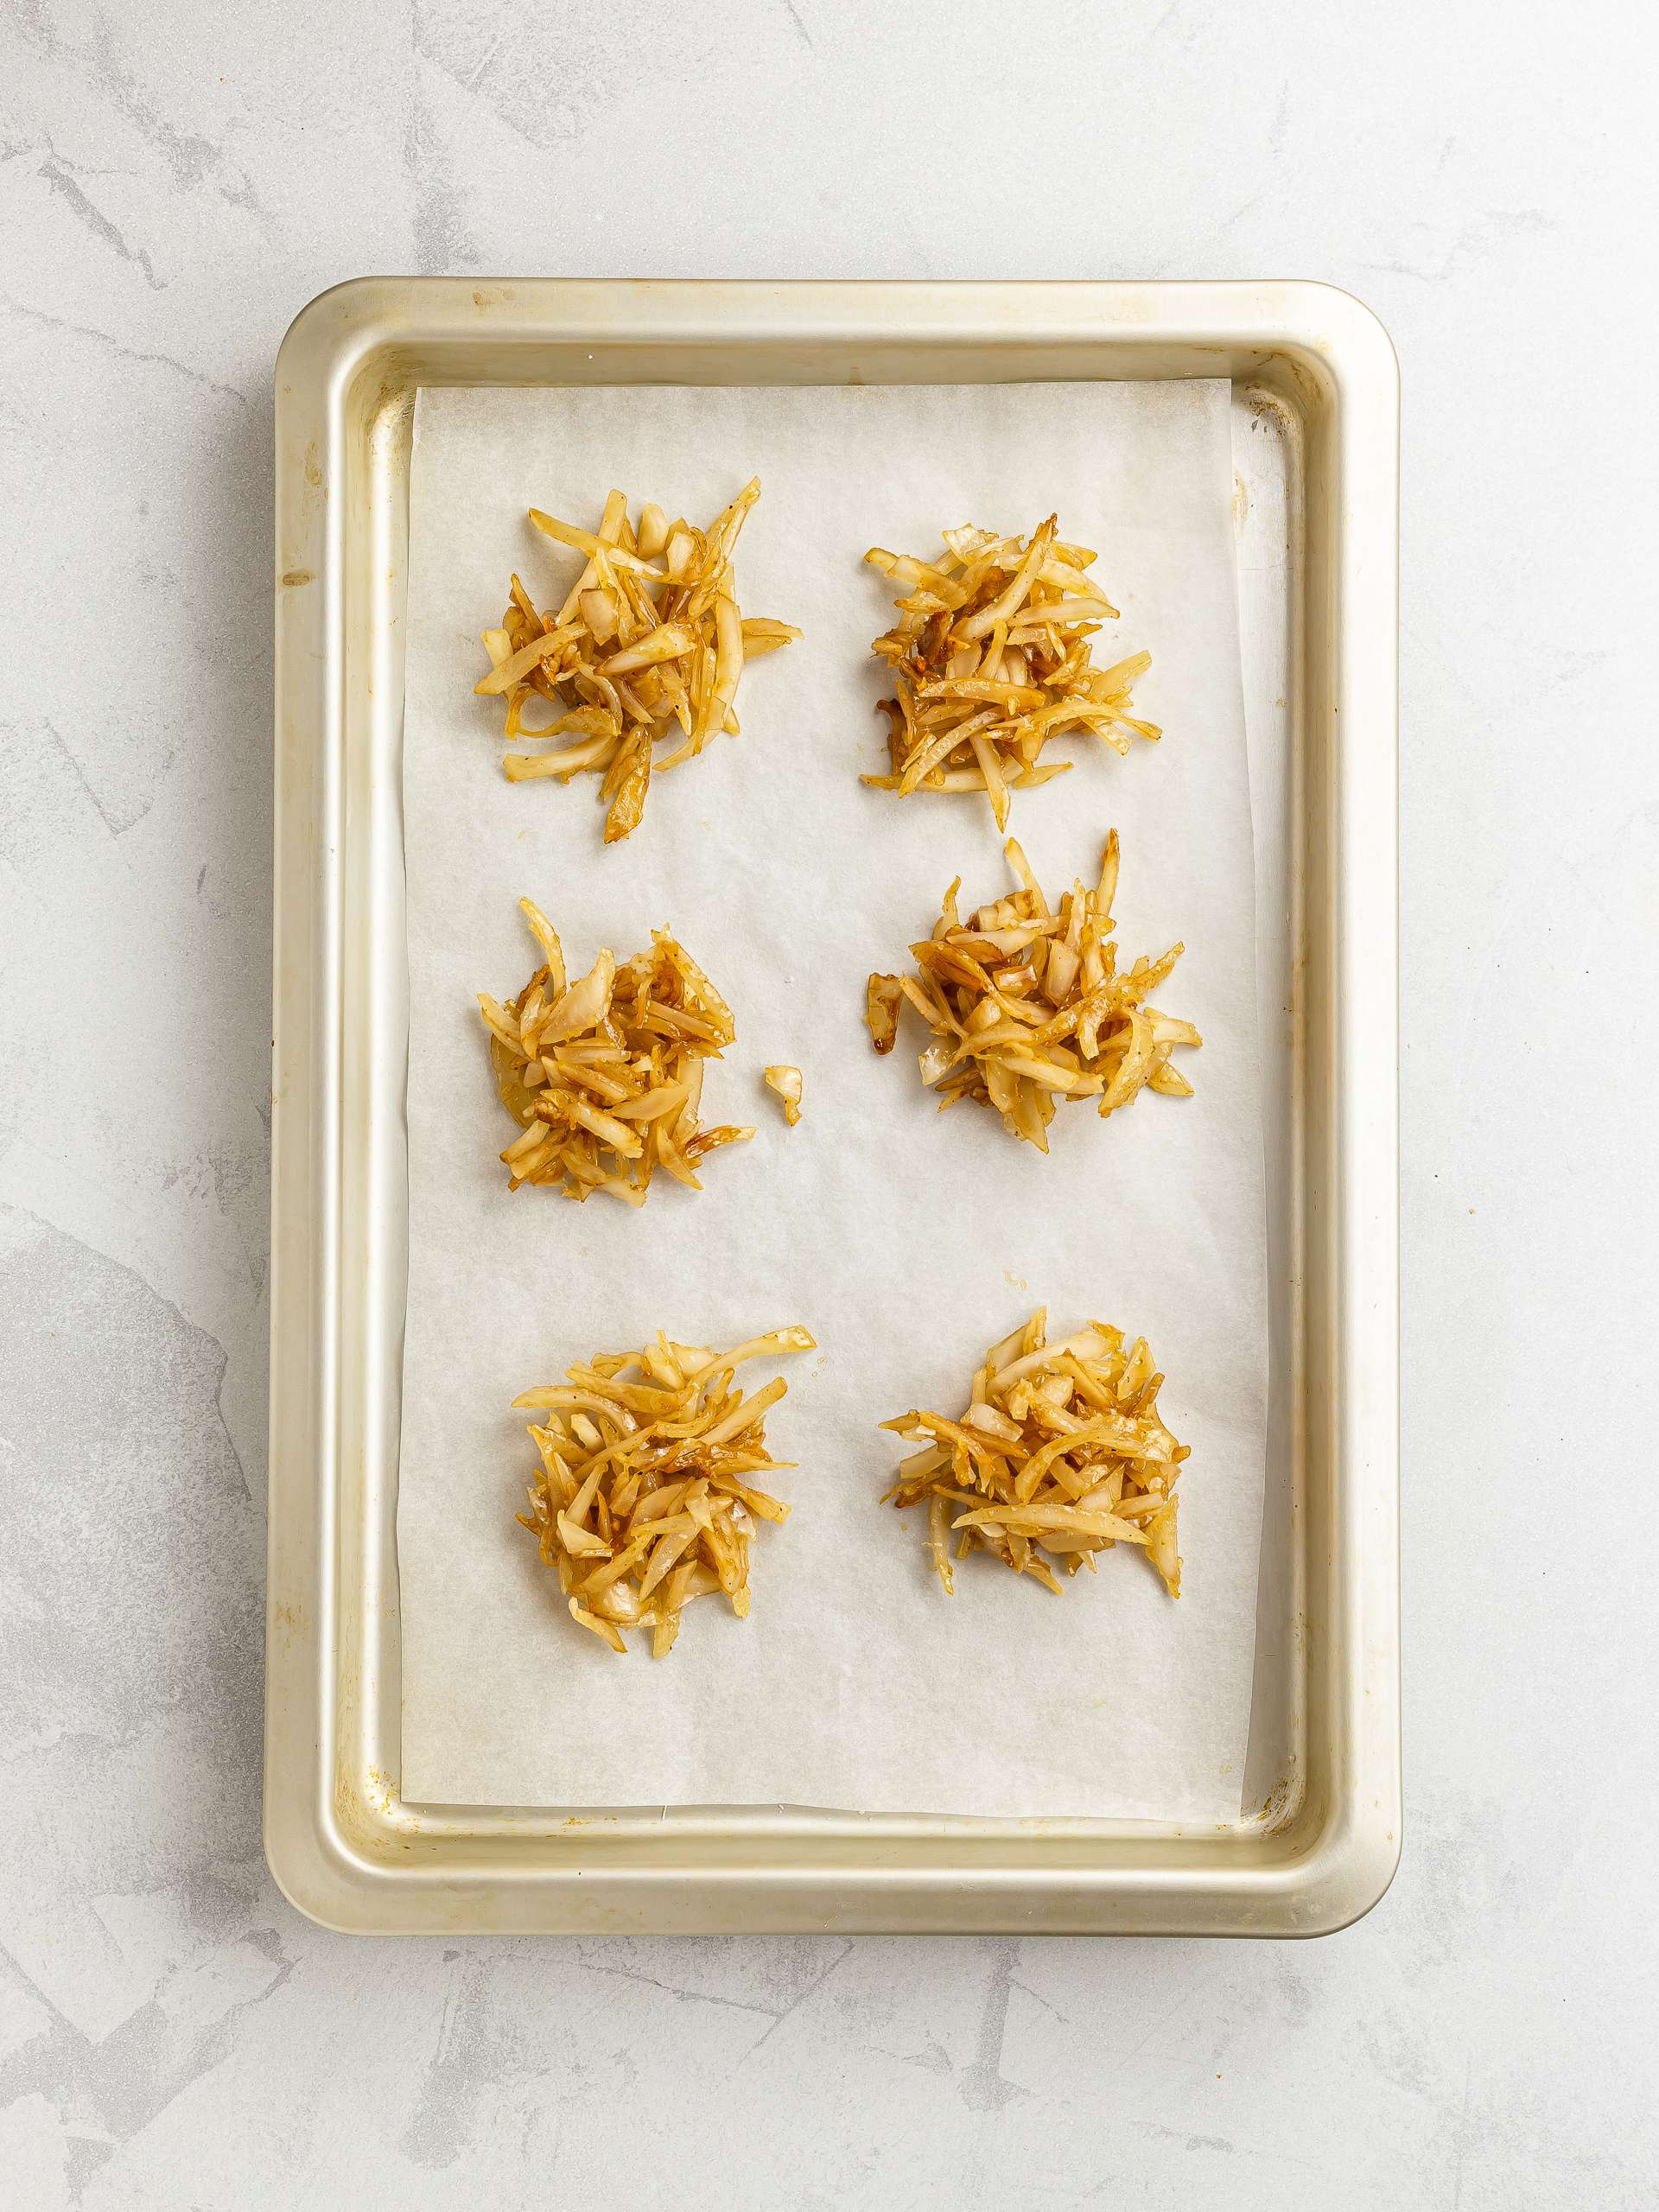 jamaican coconut drops on a tray